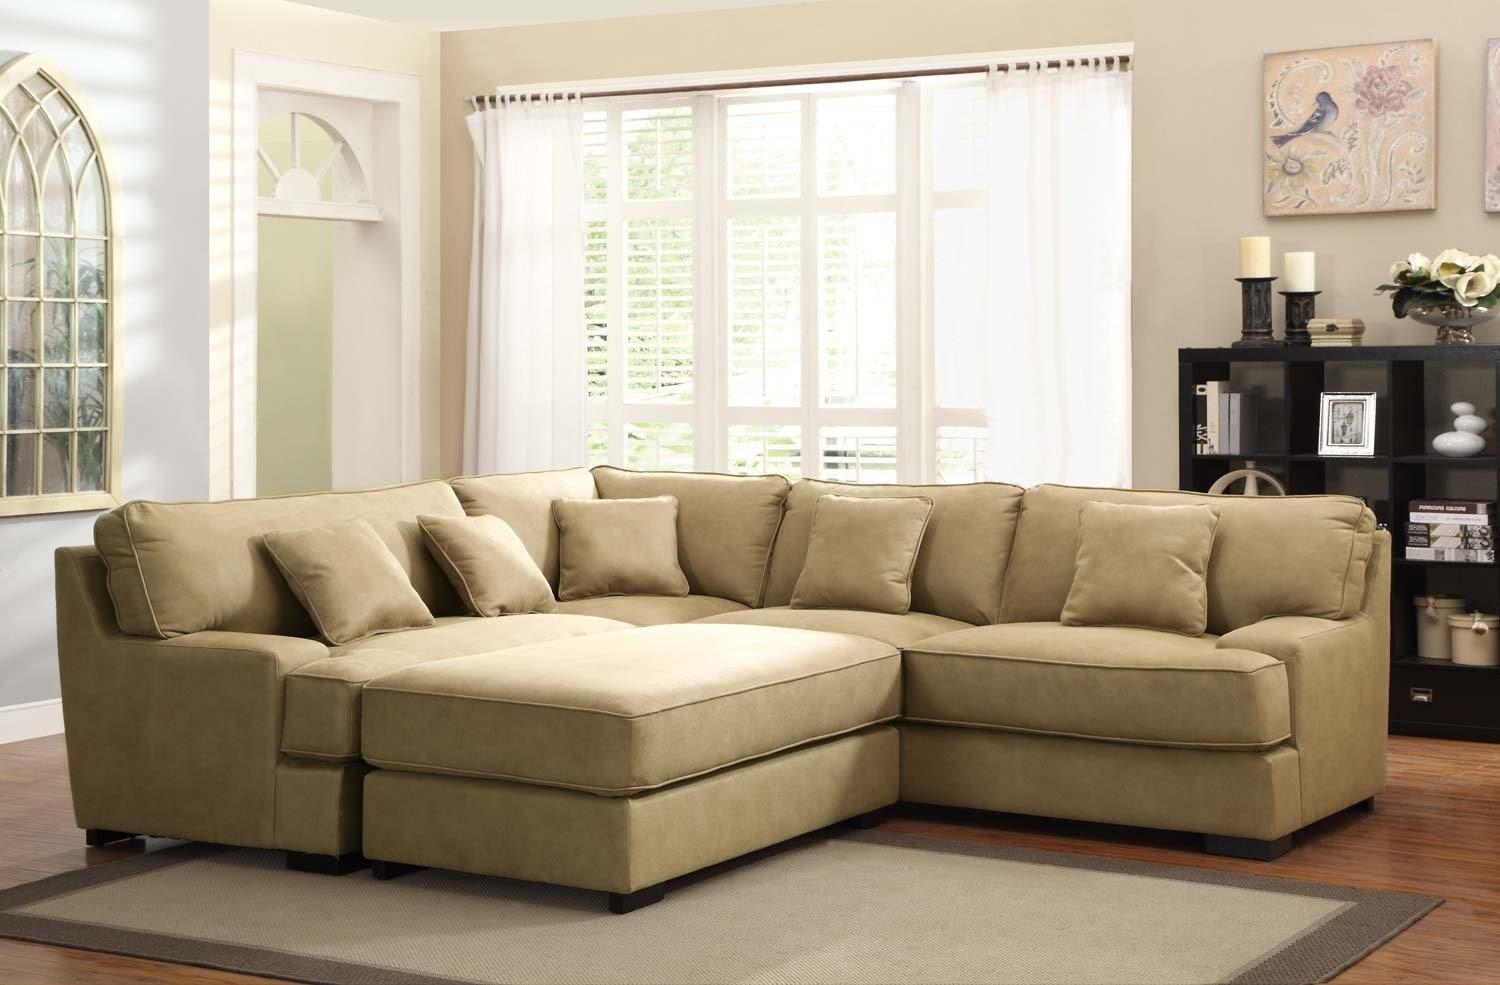 Sofas: Oversized Sofas | U Shaped Sectional Sofa | Oversized Sofa For Oversized Sectional Sofa (View 14 of 20)